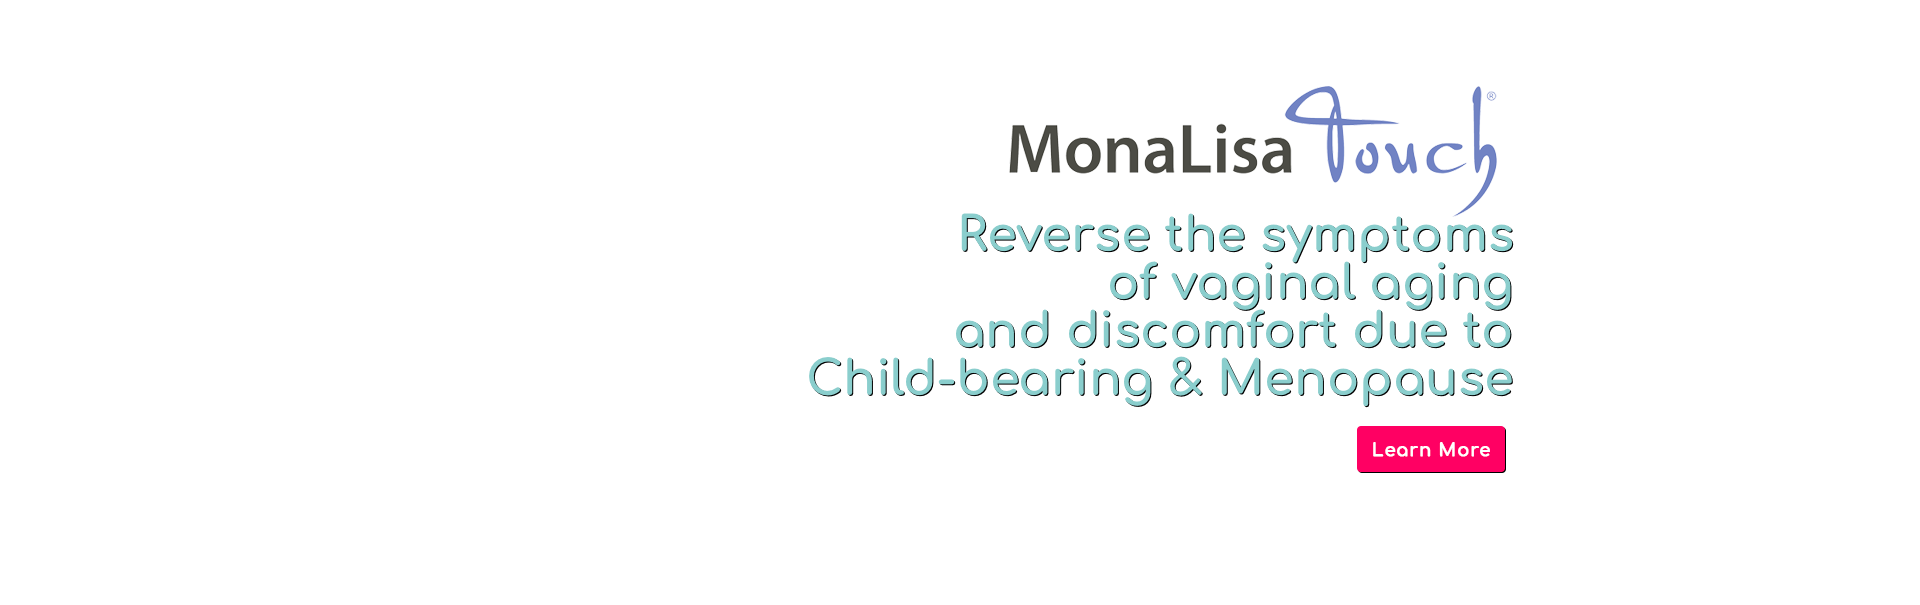 Reverse the symptoms of vaginal aging and discomfort due to Child-bearing & Menopause.  Click here to learn more about MonaLisa Touch.